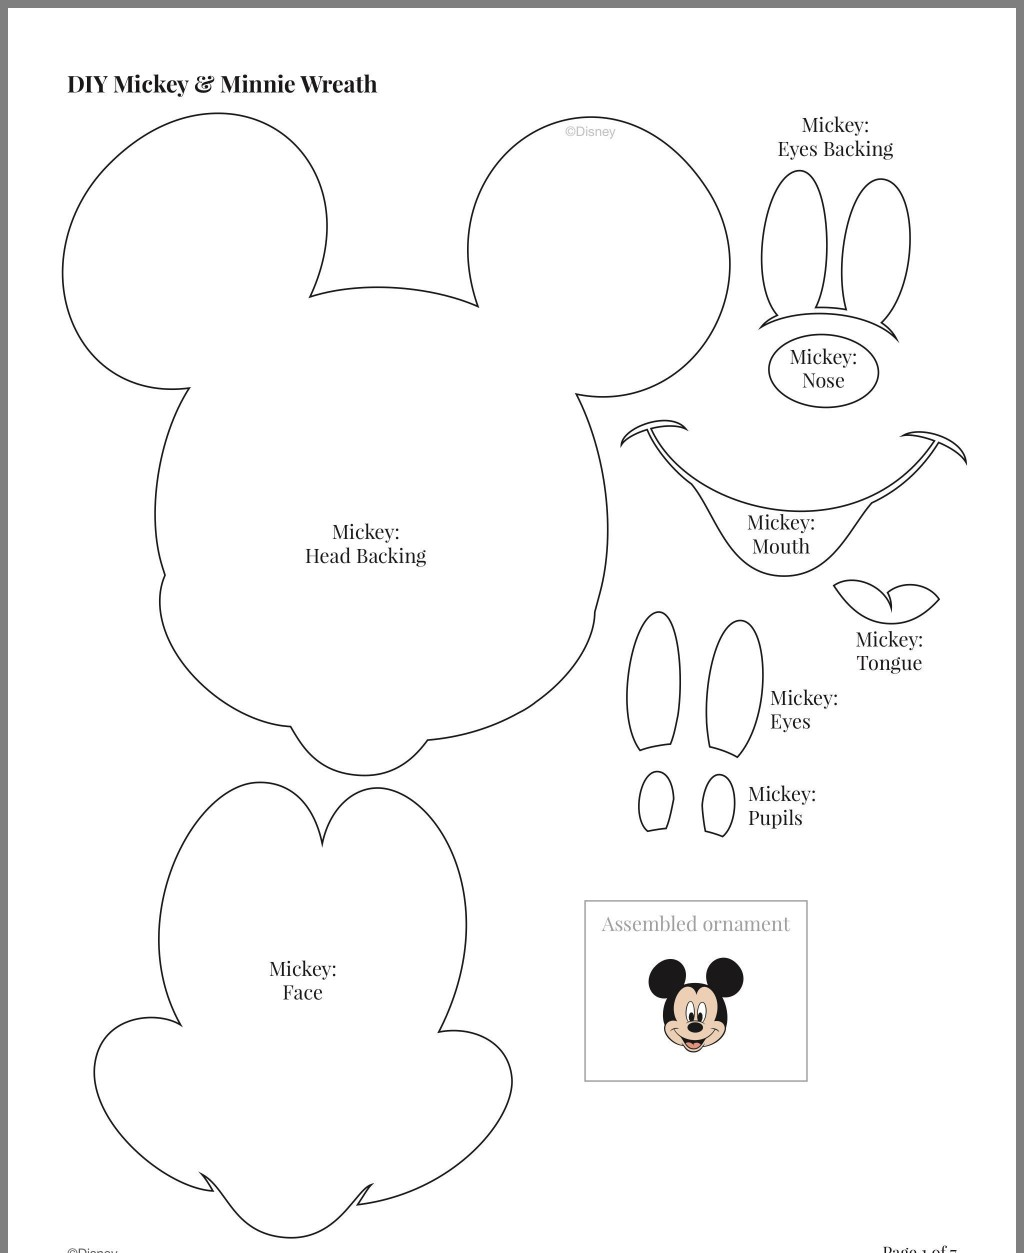 005 Archaicawful Mickey Mouse Face Cake Template Printable High Definition Large